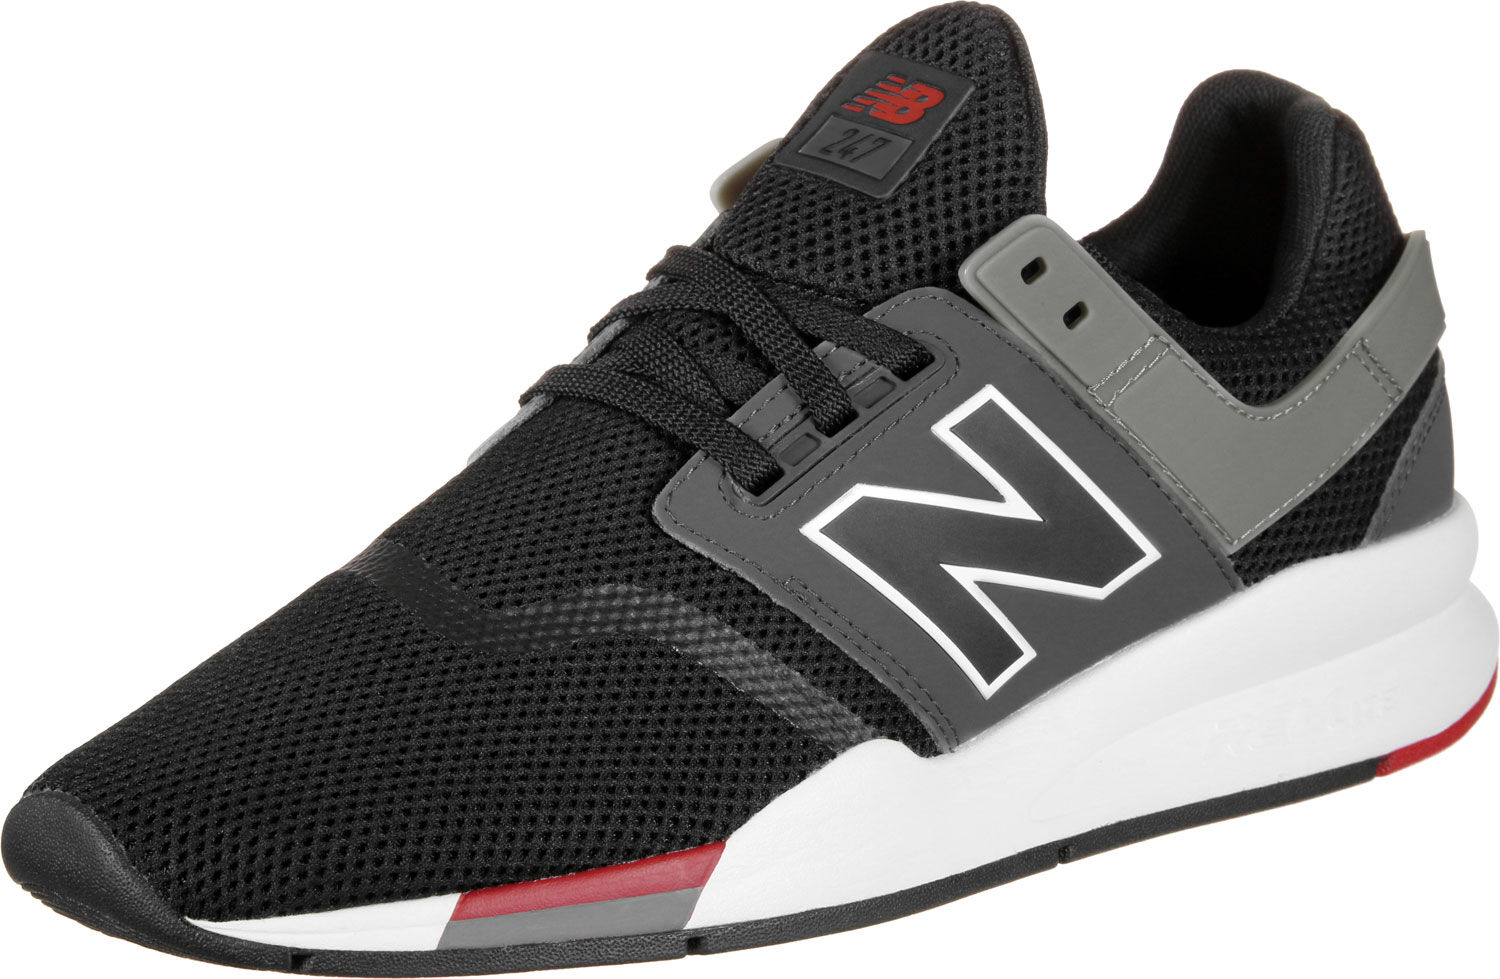 New Balance MS247 - Sneakers Low at